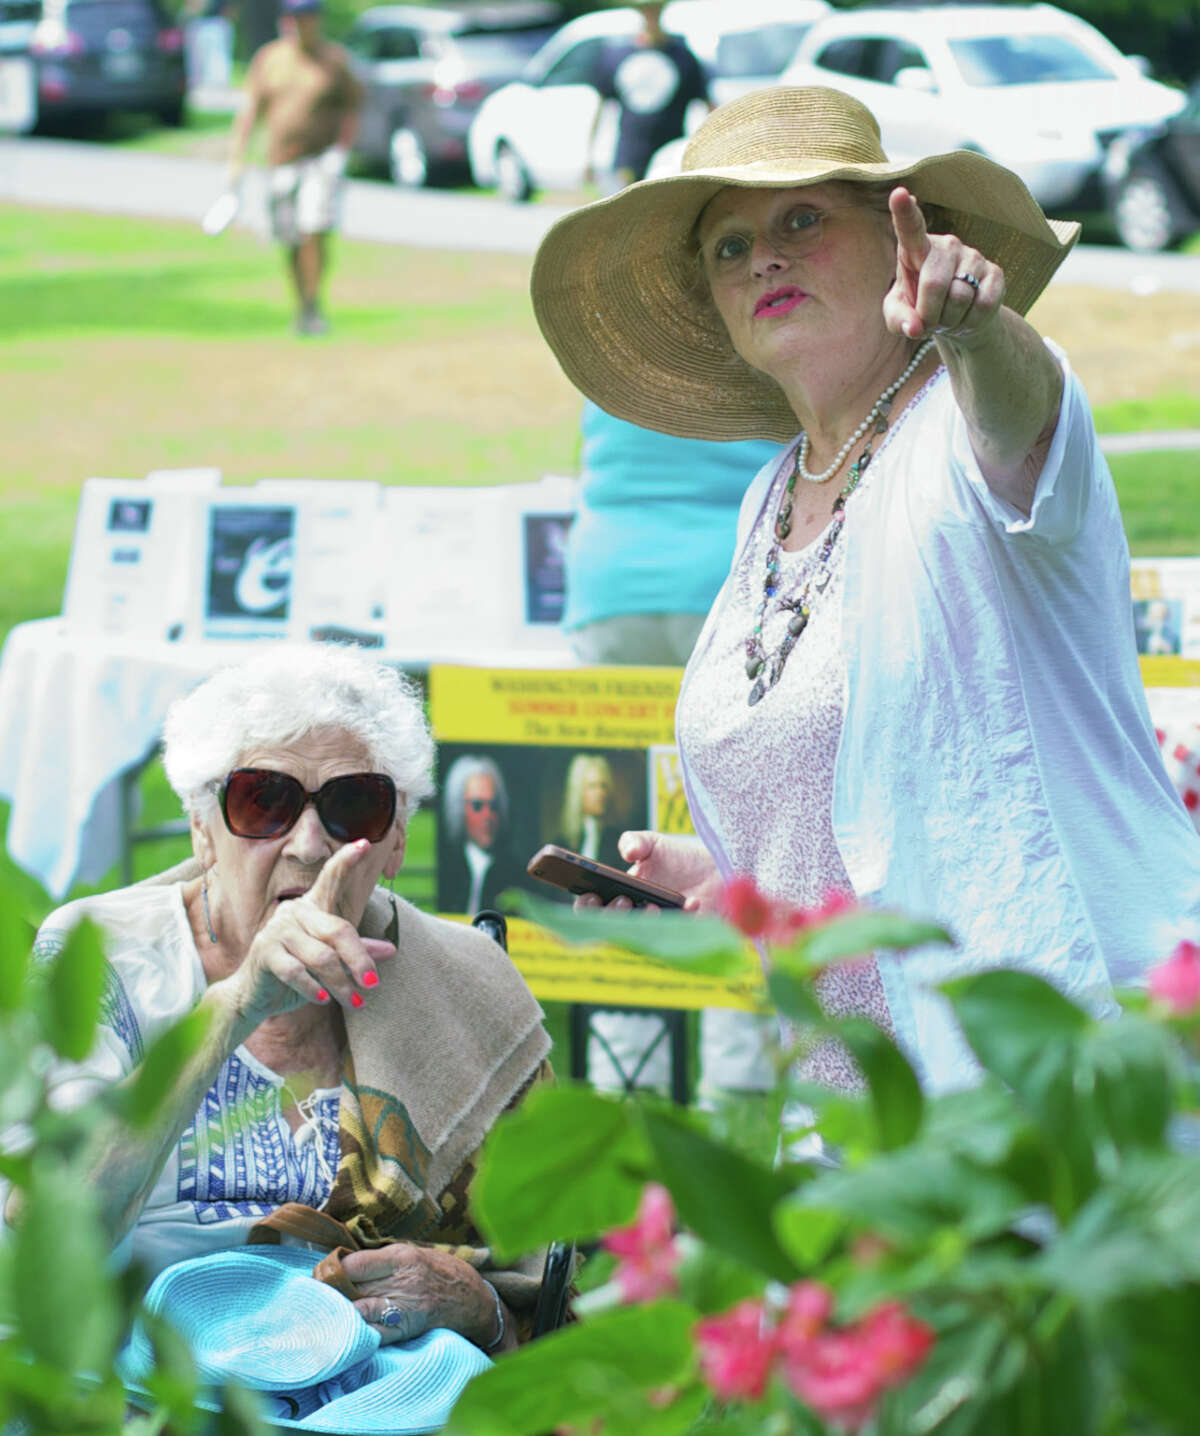 Admiring nearby flowers are Sari Max, right, of Washington, and her aunt, Mazie Bensman of New York City, during the Washington Green Fair, hosted July 12, 2014 by the First Congregational Church of Washington.